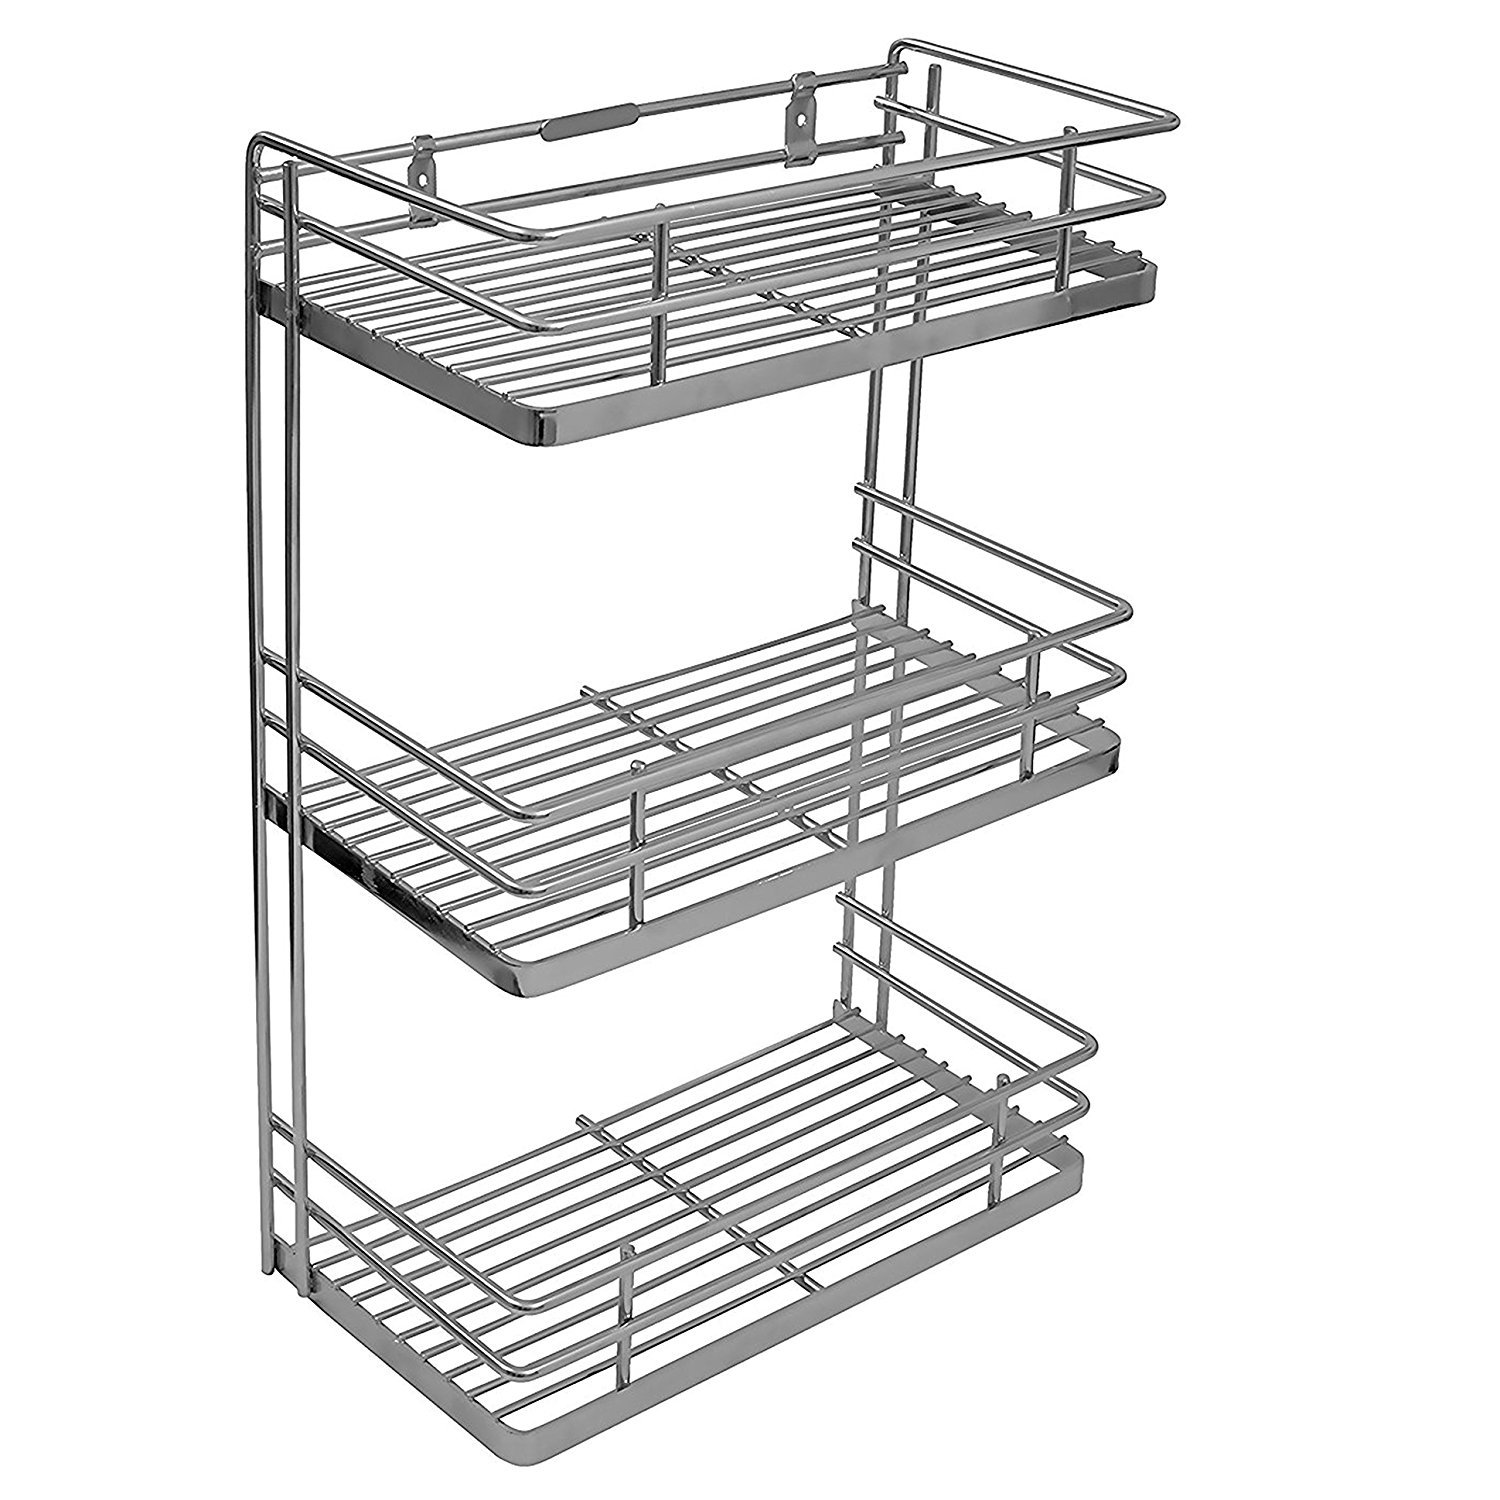 For 1799/-(54% Off) Klaxon Stainless Steel Kitchen Spice Rack (Silver) at Amazon India